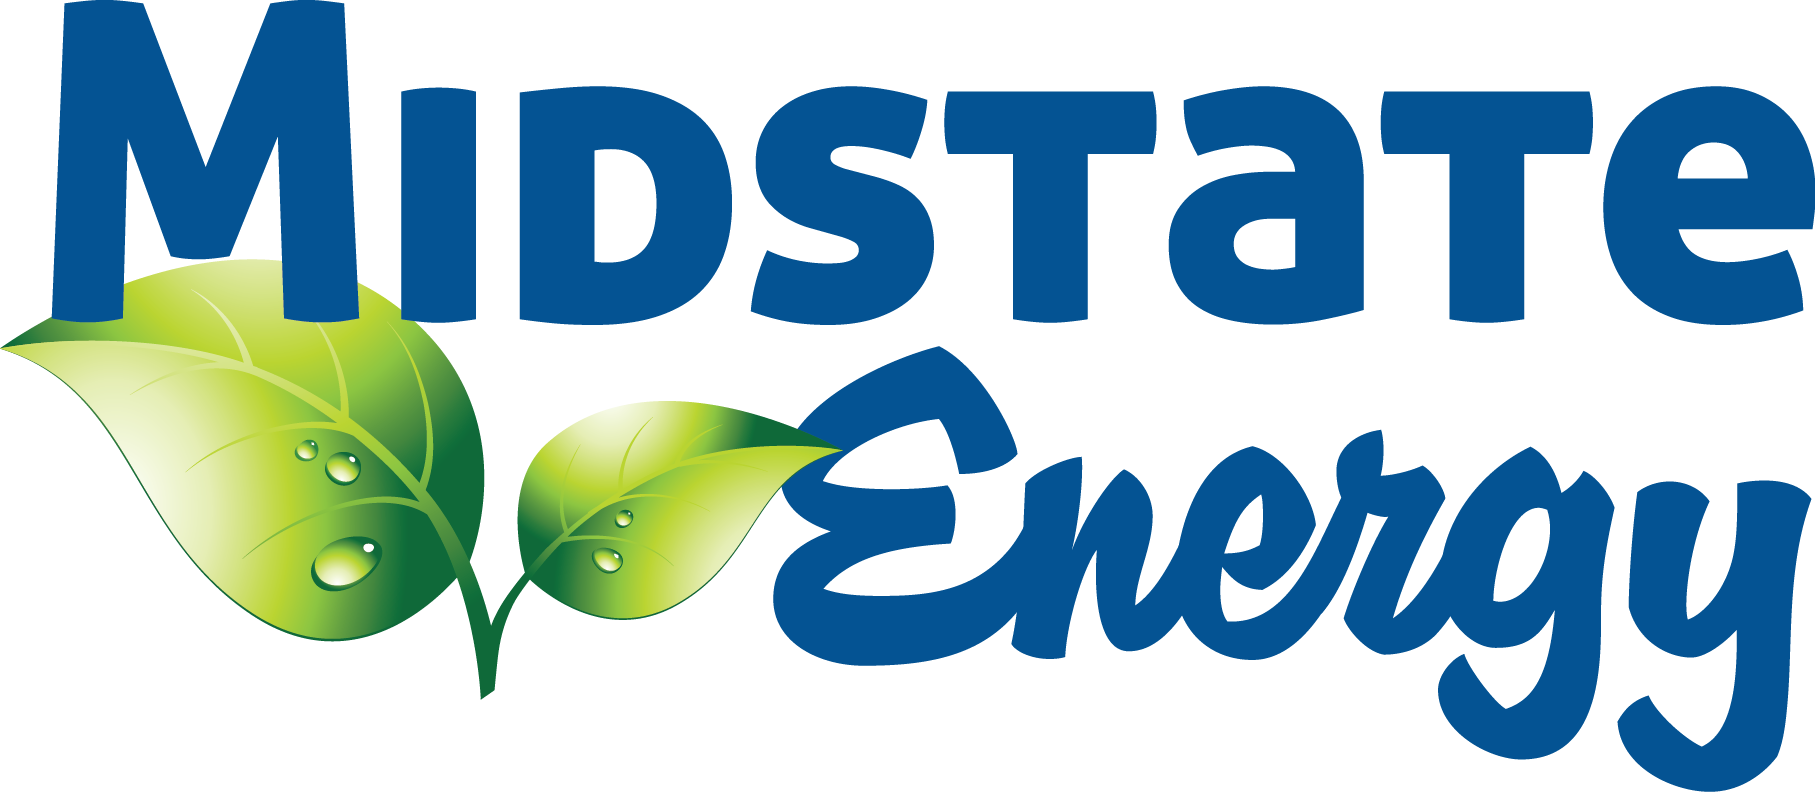 Midstate Energy logo